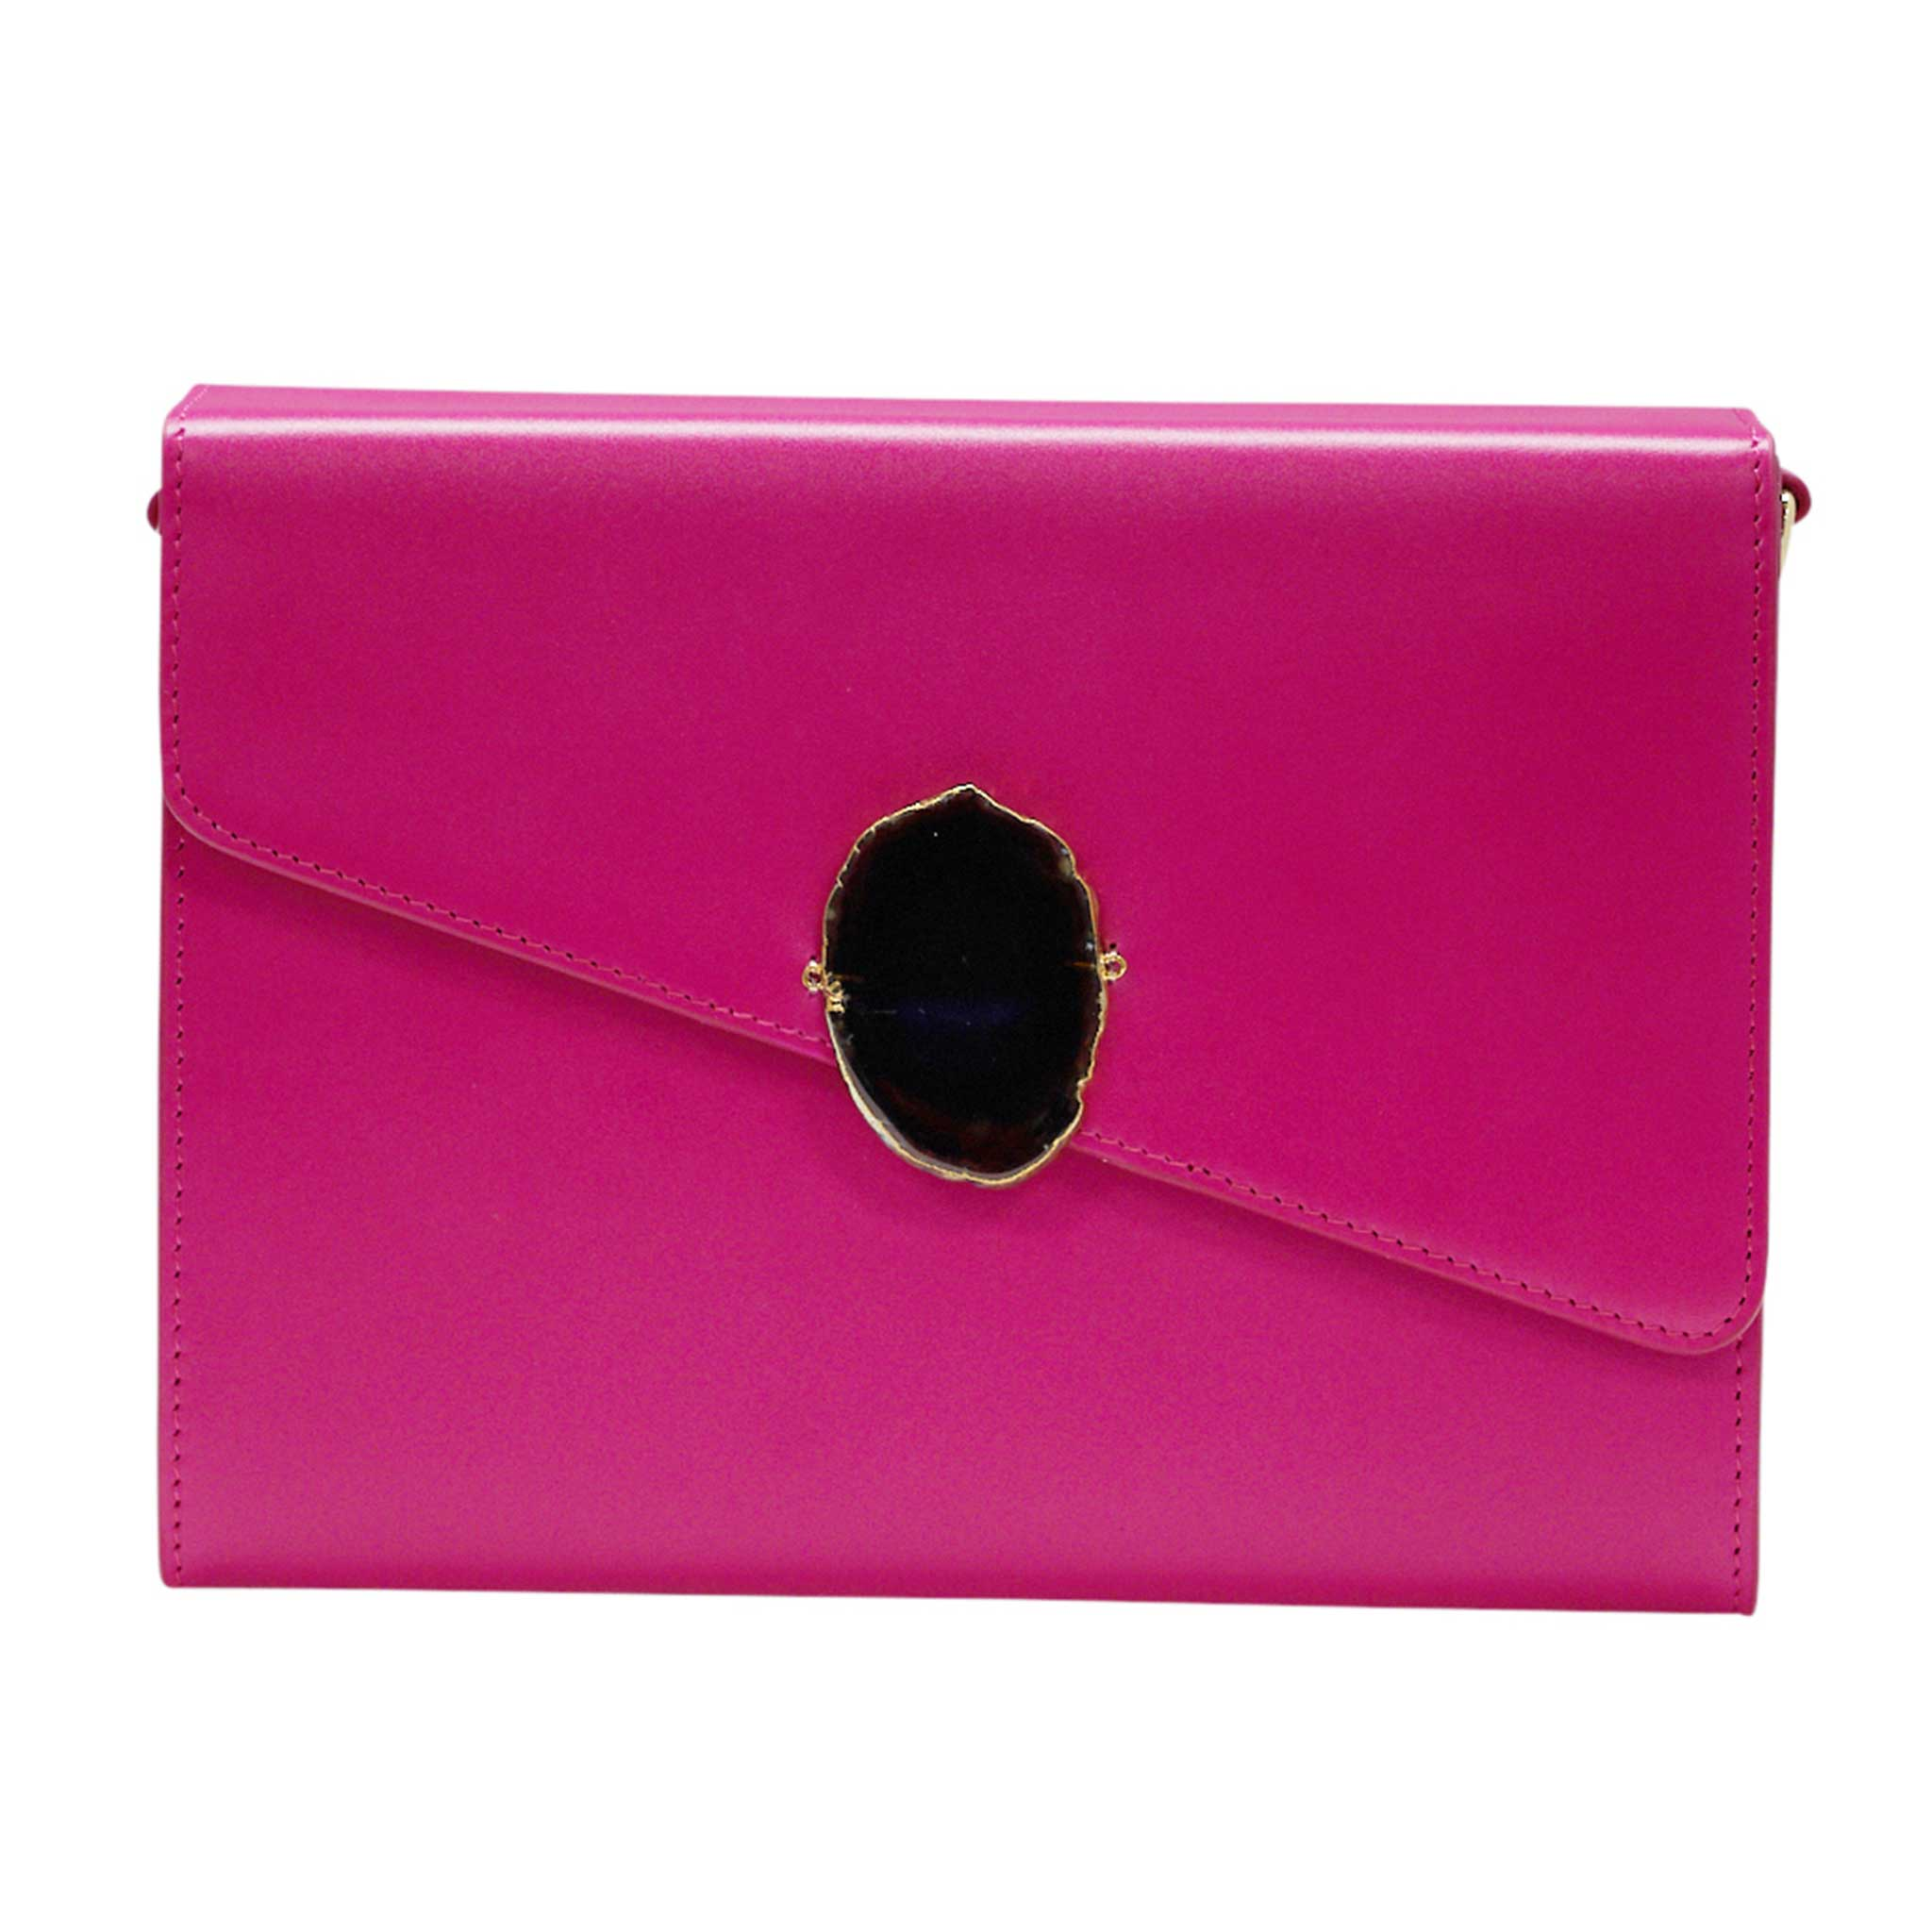 LOVED BAG - PINK RUBY LEATHER WITH BROWN AGATE - 1.01.004.034